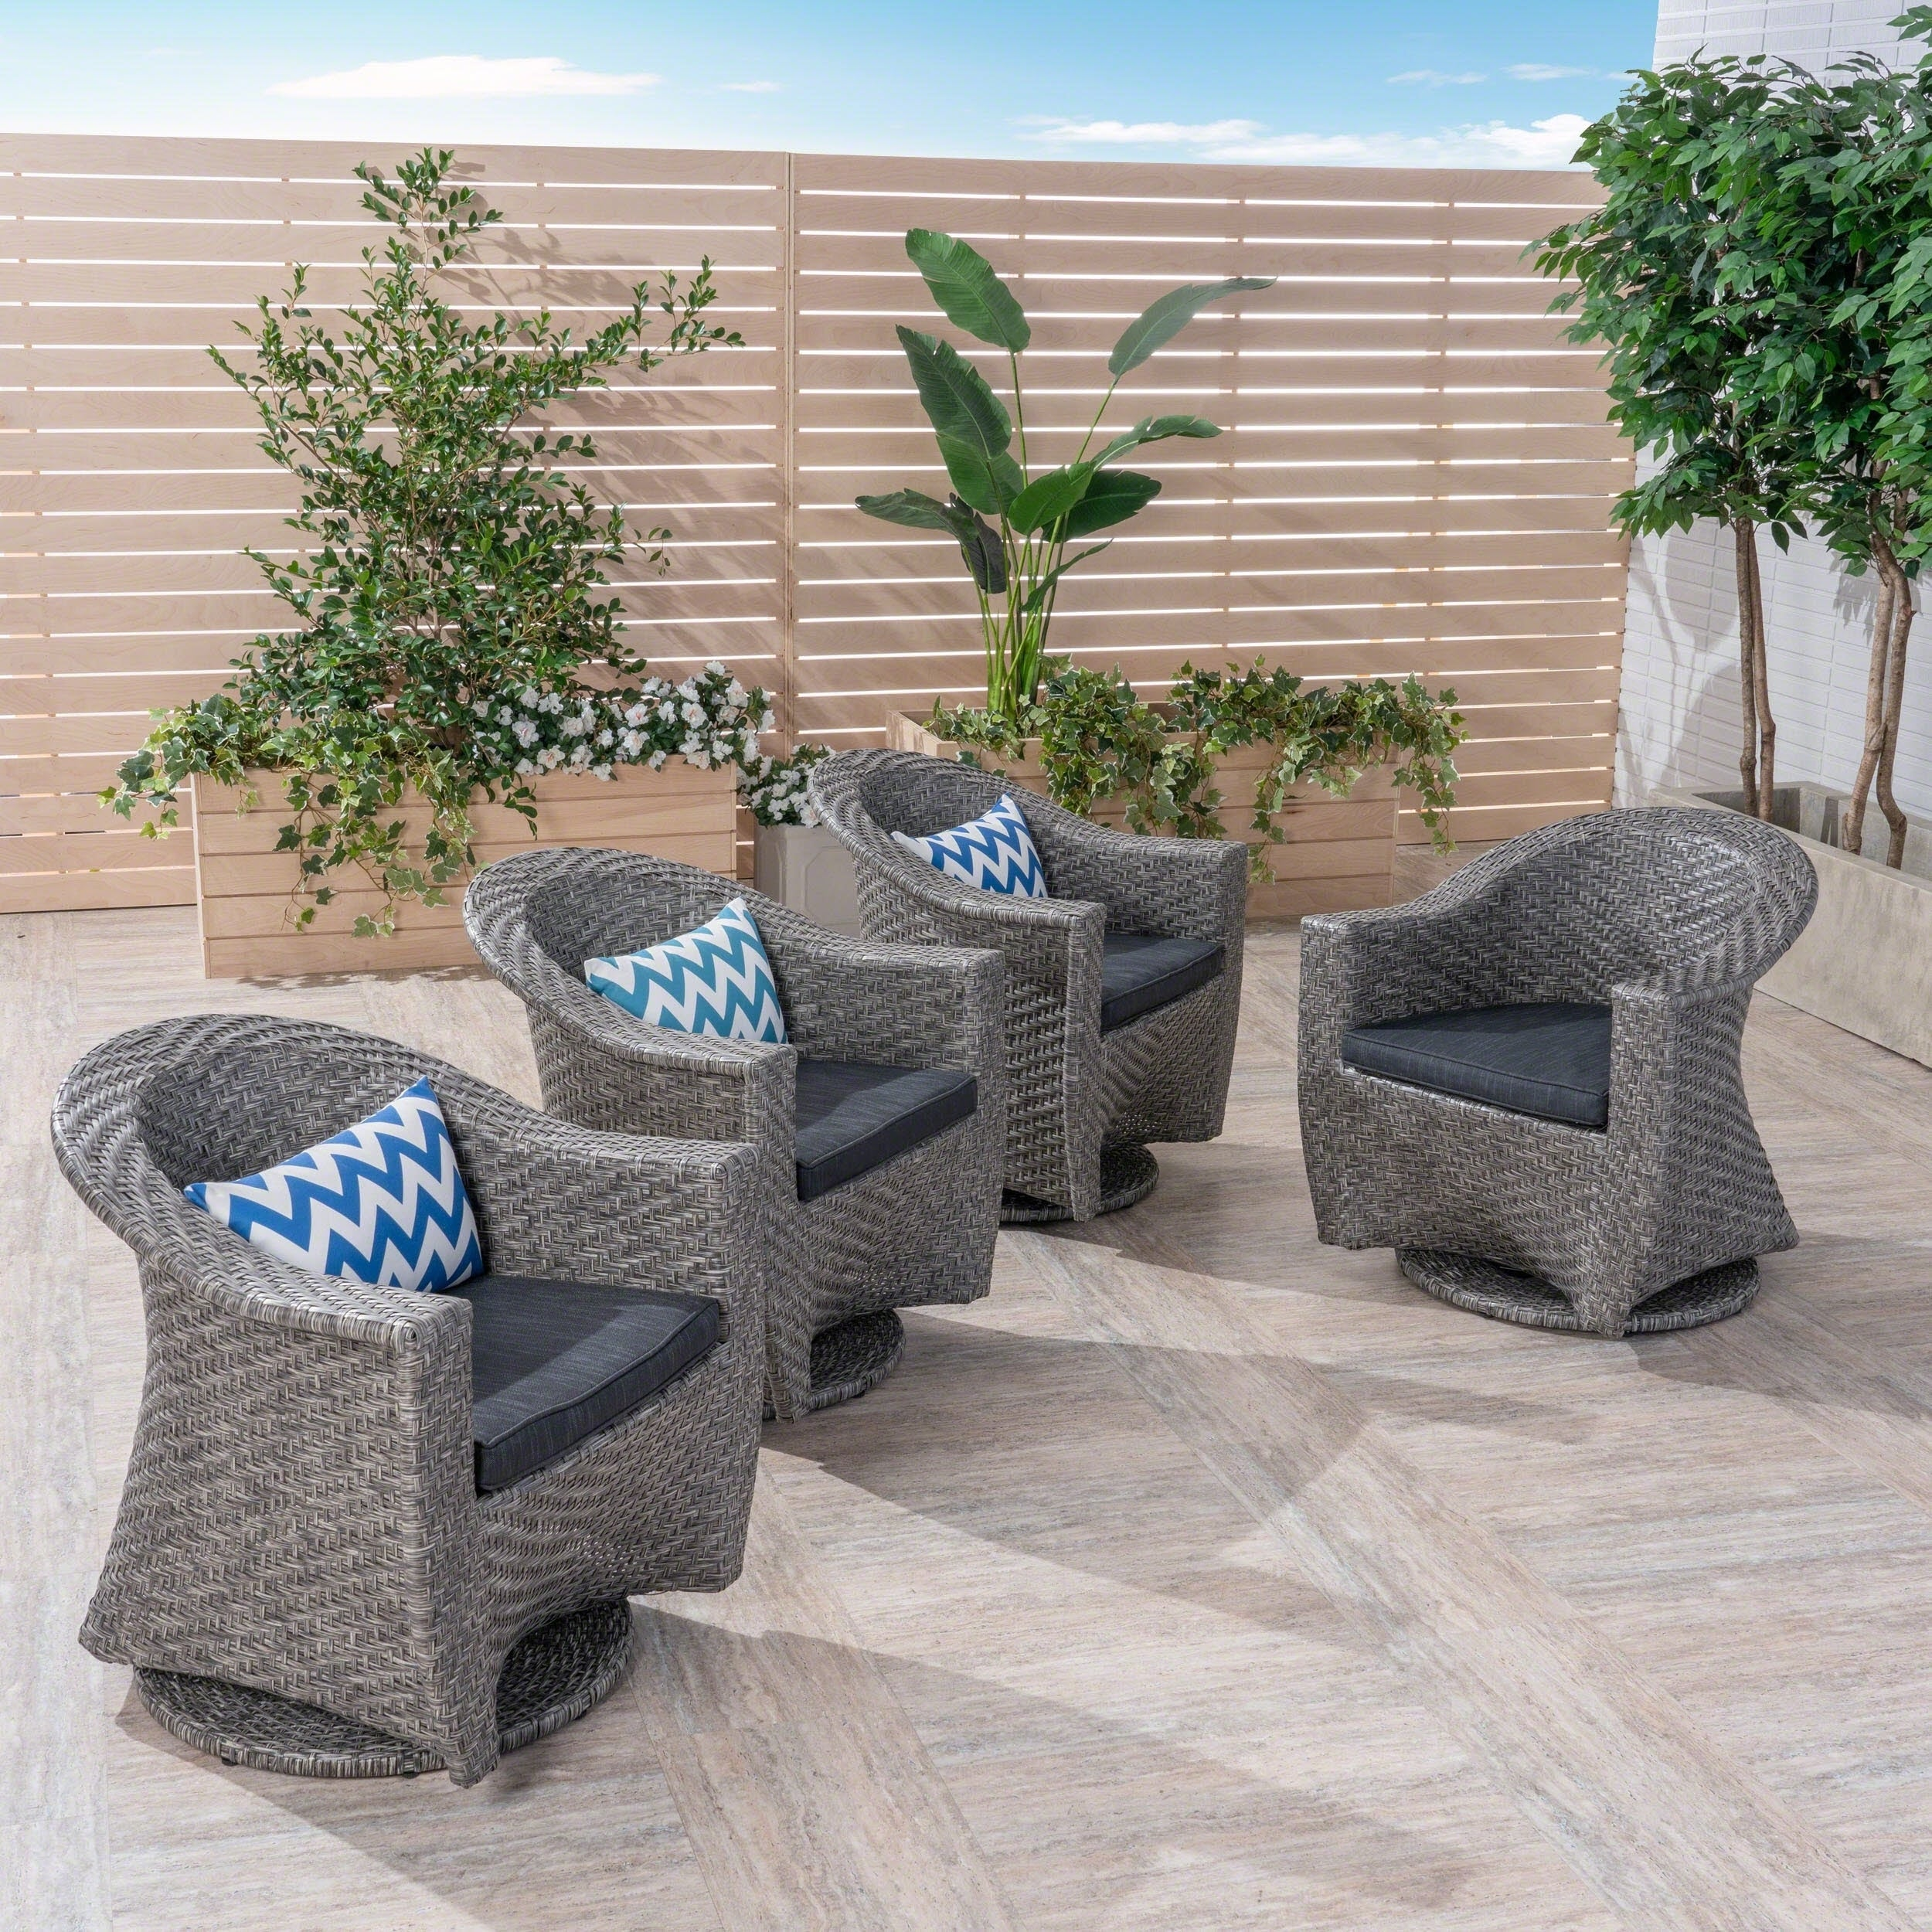 Prime Details About Larchmont Outdoor Wicker Swivel Chairs With Cushions Set Of Mixed Black Dark Cjindustries Chair Design For Home Cjindustriesco